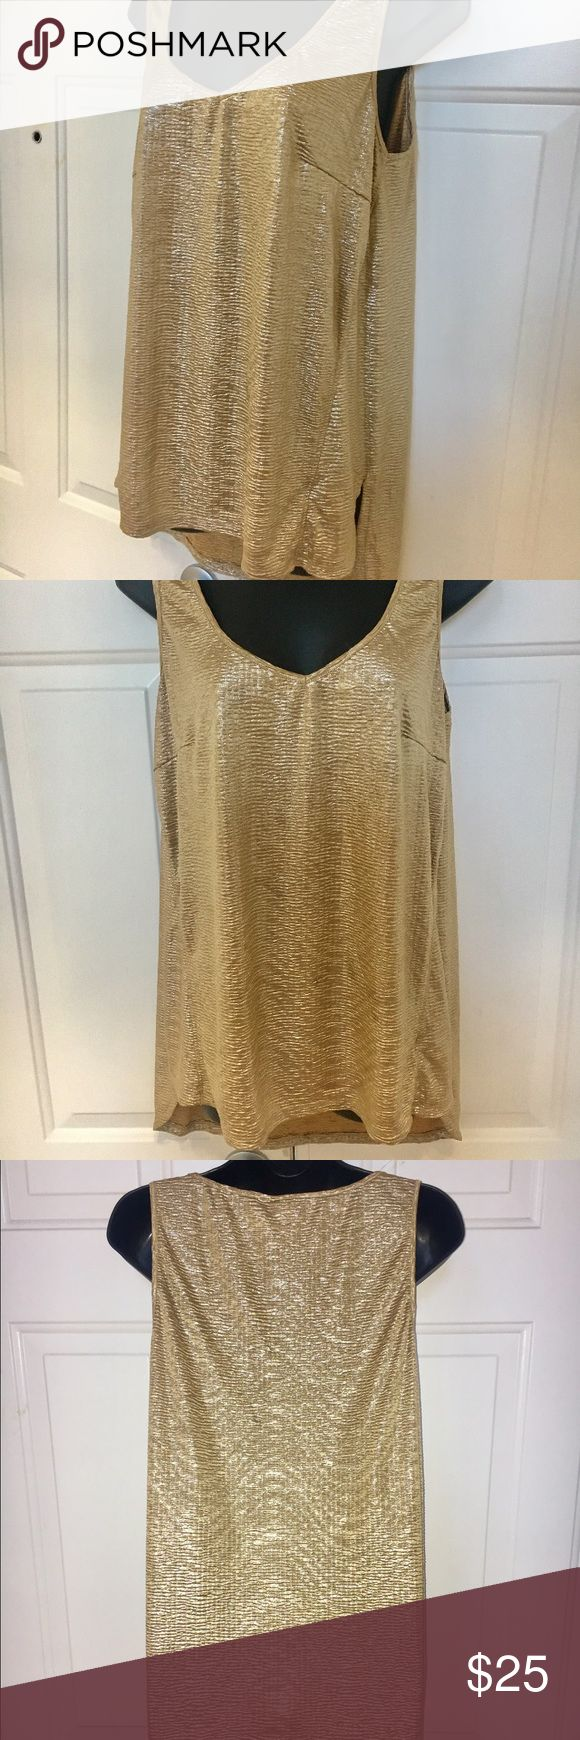 LabWorks Metallic Gold high low Camisole Top XXL P Metallic gold Sleeveless Camisole by LabWorks. Size is XXL P which I believe is petite. Hem is lower in front and longer in back. Luxurious and color is absolutely stunning. Can be worn as a slip, nighty, Camisole, or paired with jeans or black slacks. Brand new. No tags. Tops Camisoles